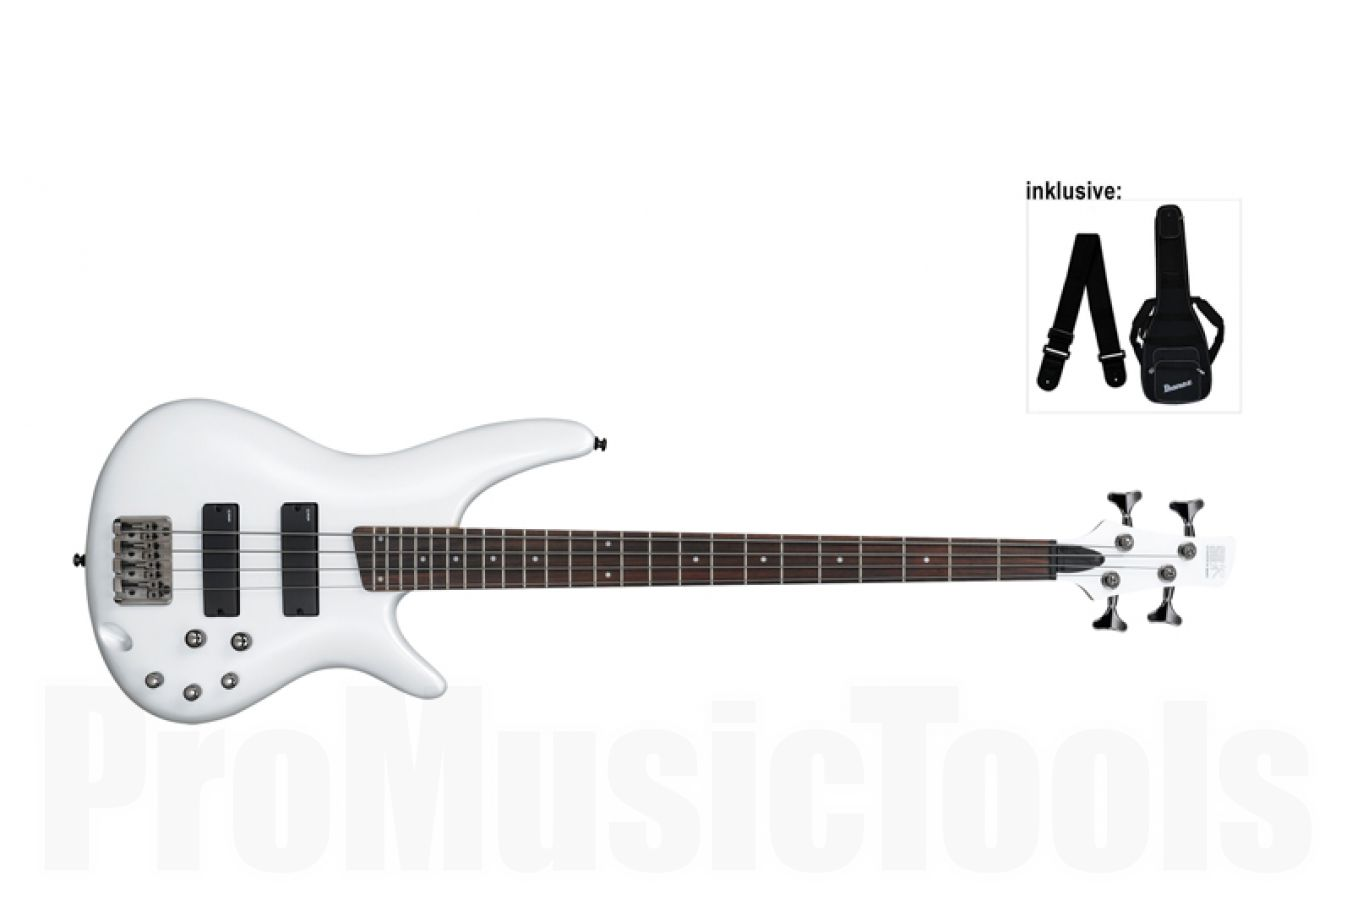 Ibanez SR300 PW - Pearl White - b-stock (1x opened box)